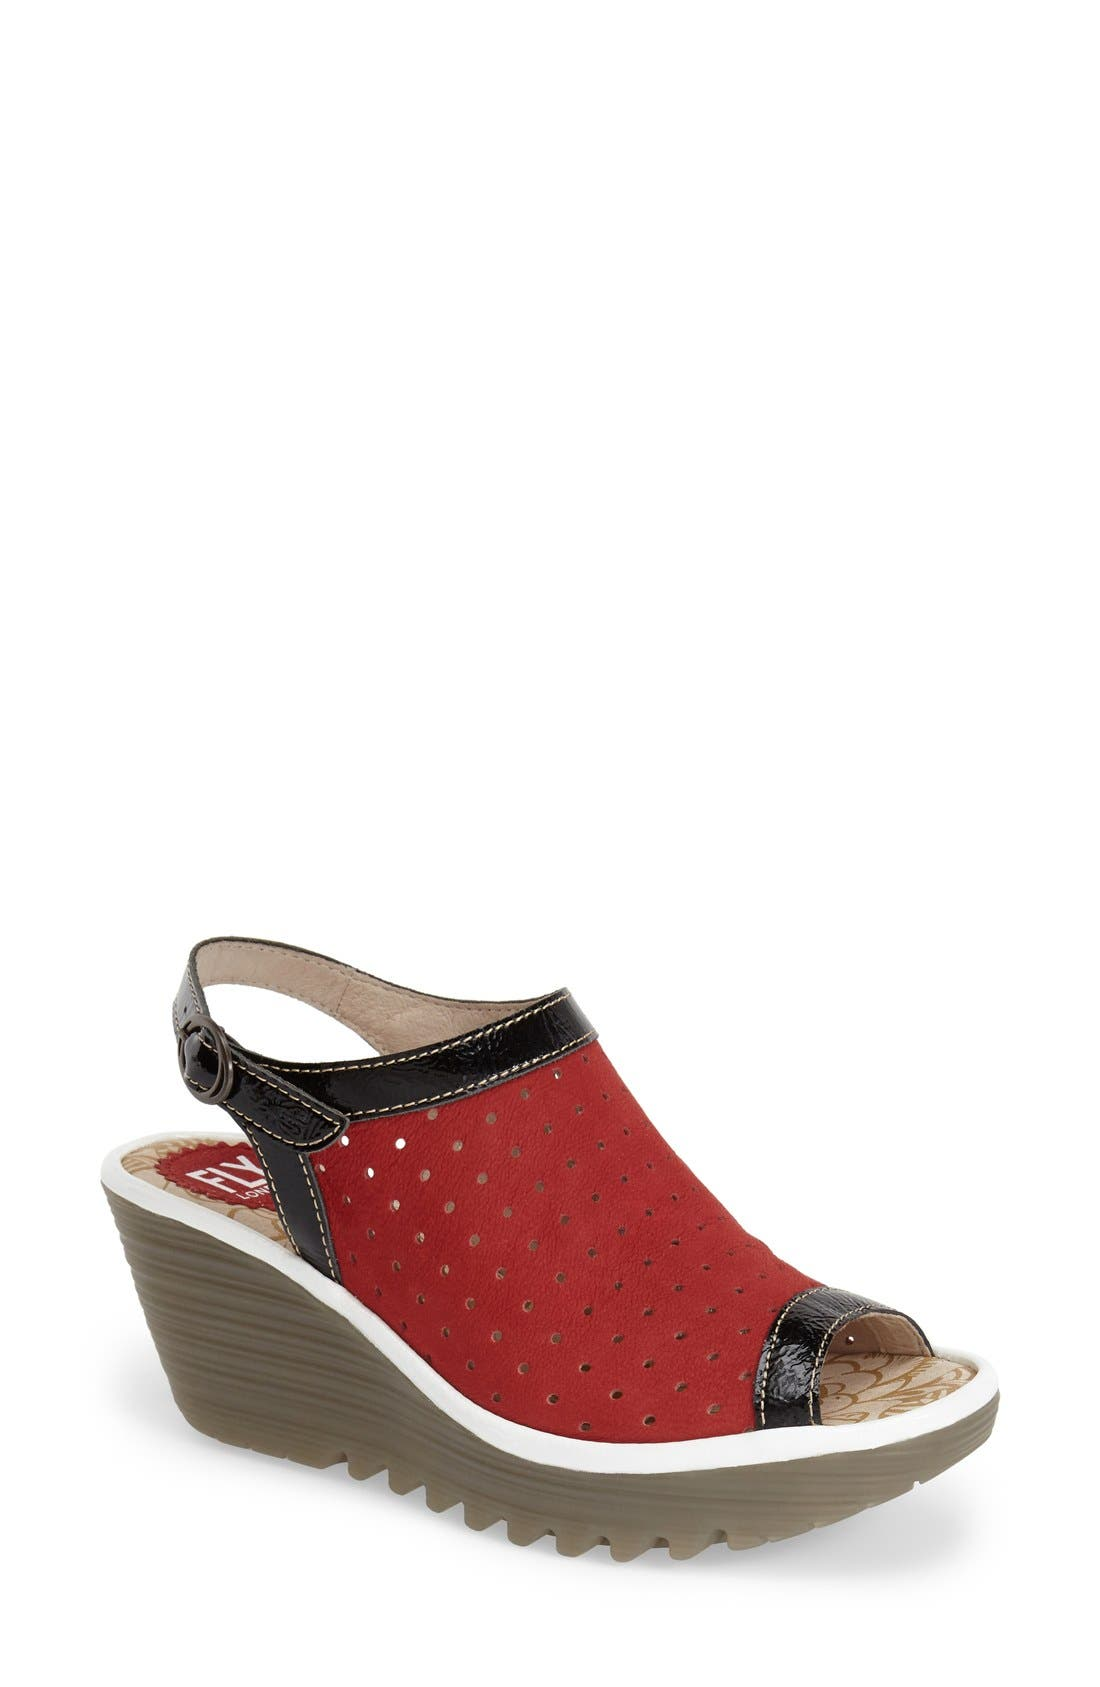 FLY LONDON 'Yile' Perforated Slingback Wedge